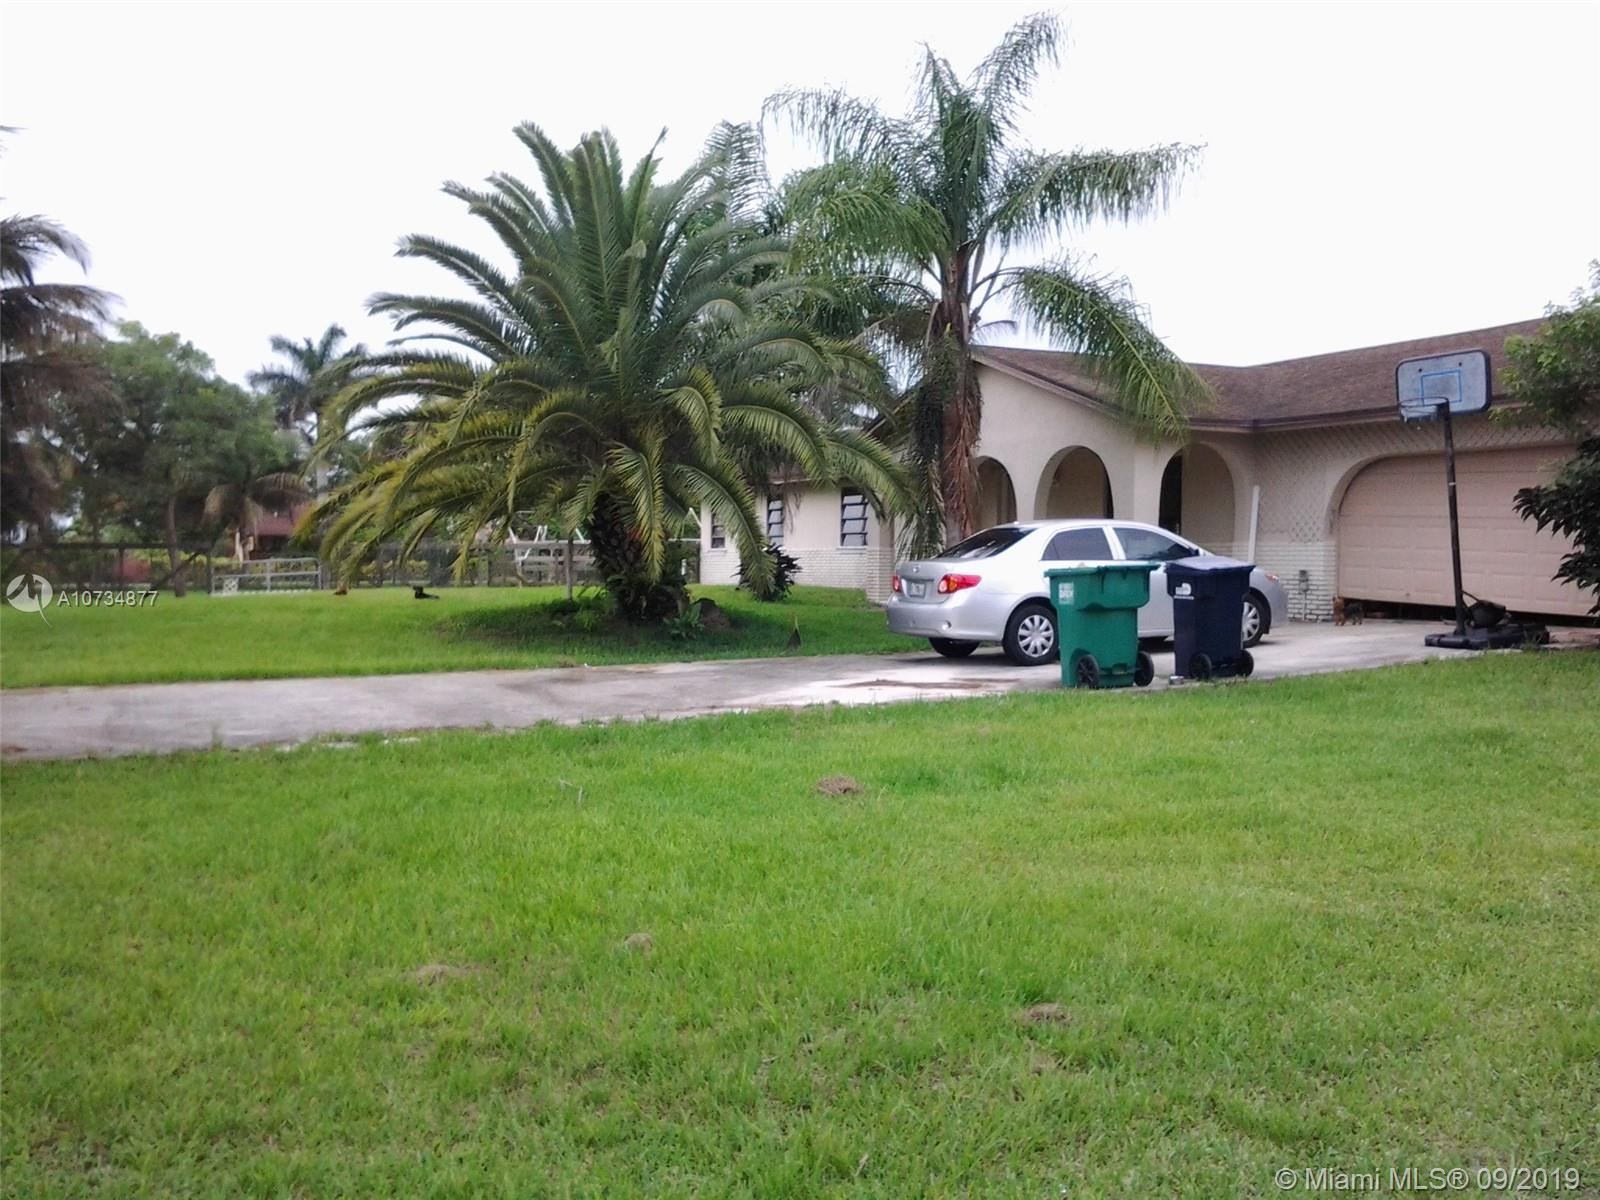 21455 SW 236th St, Homestead, FL 33031 - Homestead, FL real estate listing